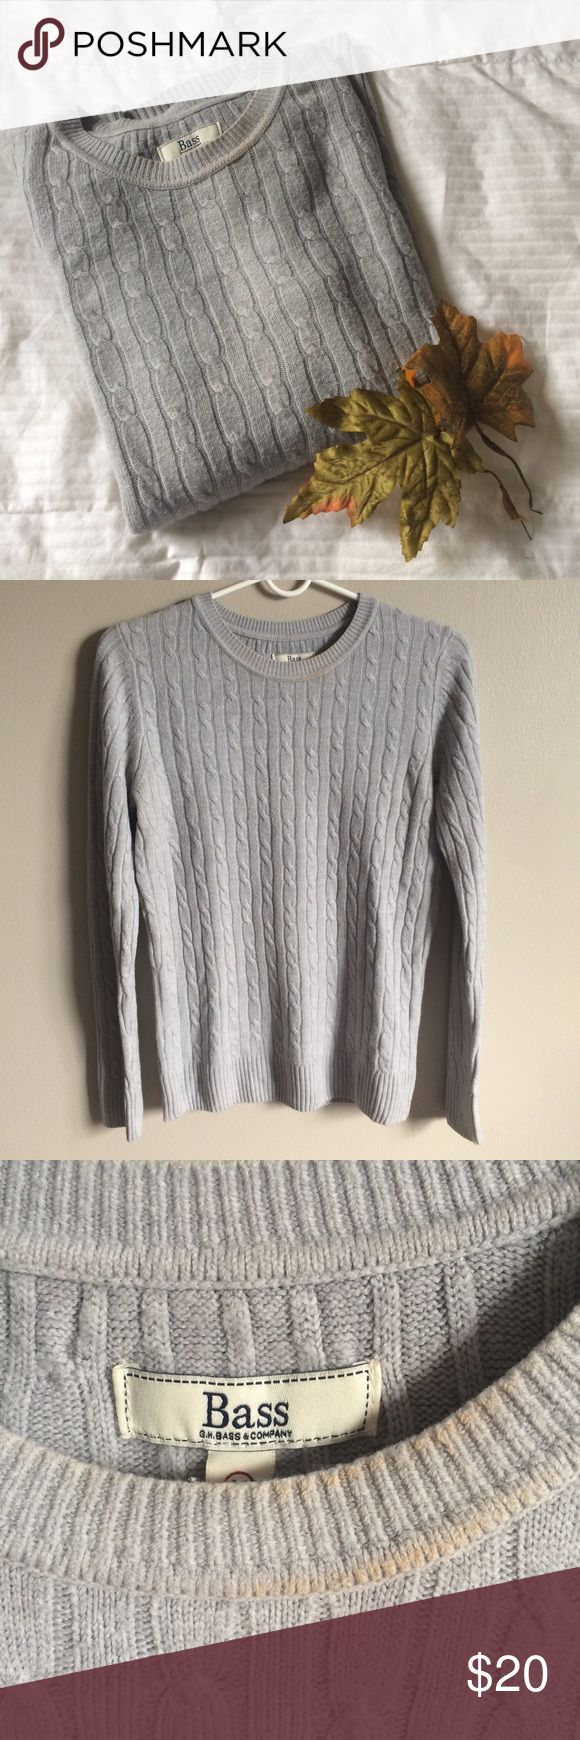 🆕🍂 GH Bass Grey Cable Knit Pullover Sweater Fall special! GH Bass grey cable knit sweater. Crew neck. Very warm and not itchy at all! Looks great with some skinny jeans and ankle boots. Slight discoloration on the collar (see pic 3), but otherwise in good condition. Size M. 100% acrylic. Machine wash warm gentle cycle. Tumble dry low. •Accepts reasonable offers •Ships within 1-2 days of purchase •Offers 10% bundling discount on all items Bass Sweaters Crew & Scoop Necks